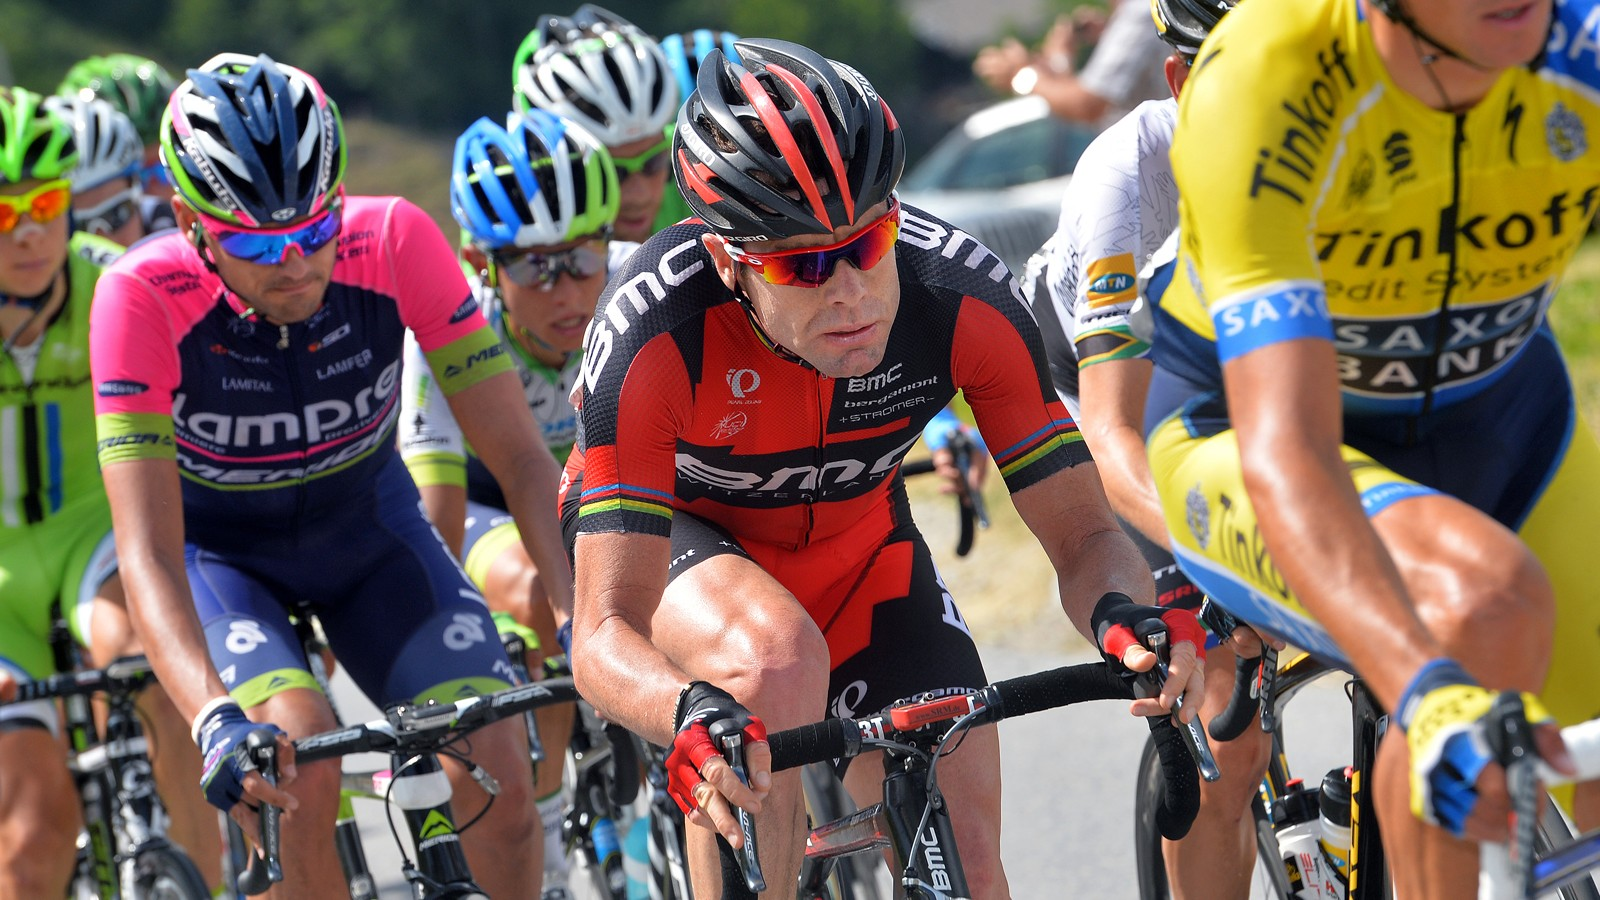 Cadel Evans at the 78th Tour of Swiss 2014 / Stage 9